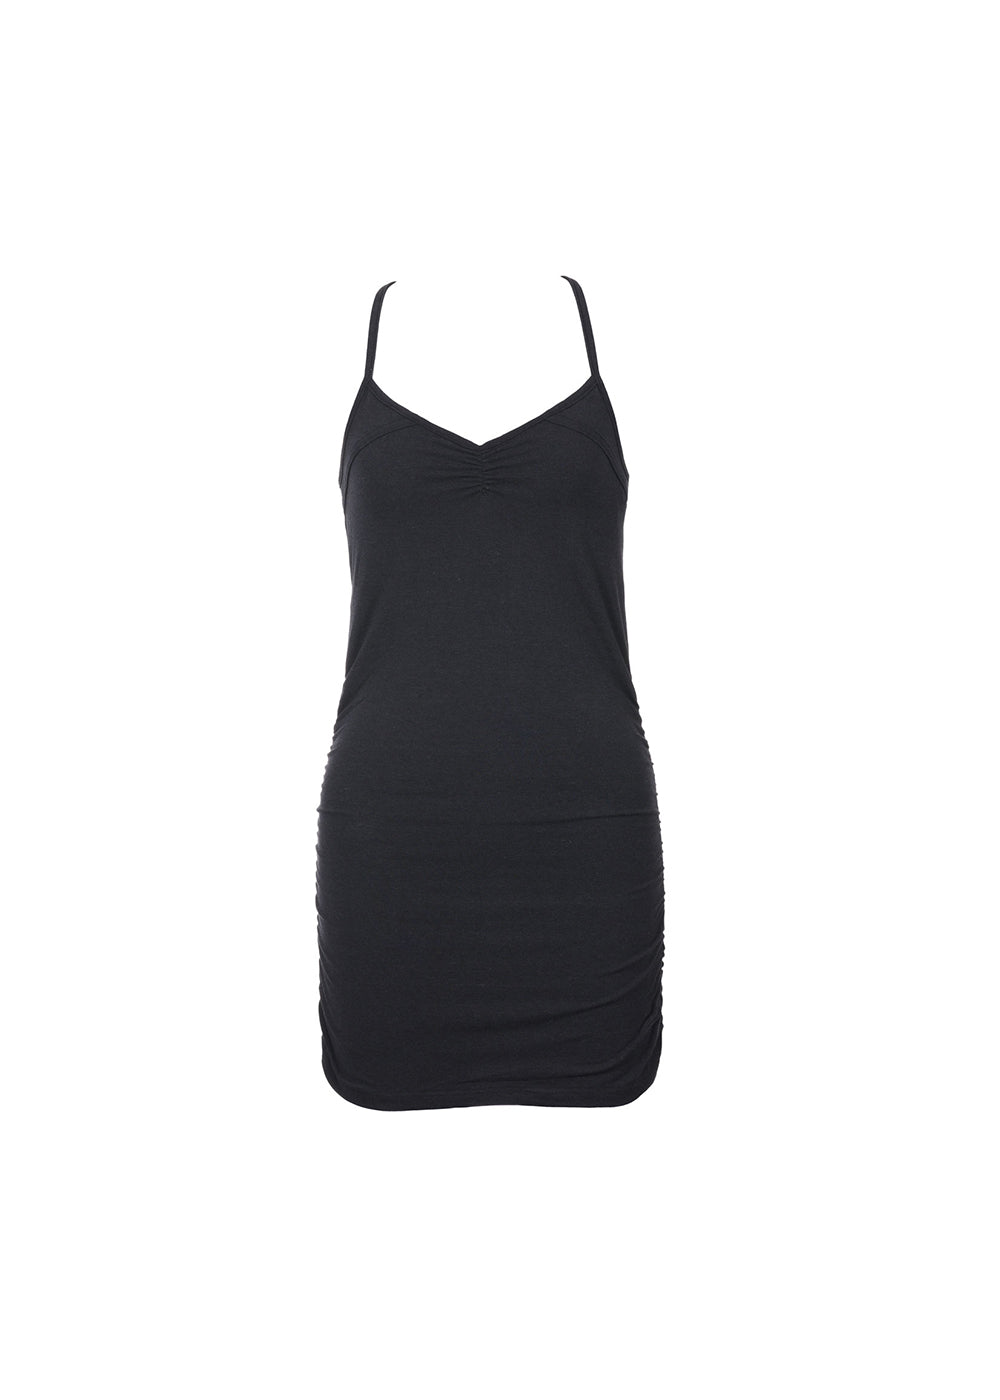 Bamboo and organic cotton long black tank with racerback and shredded detailing.